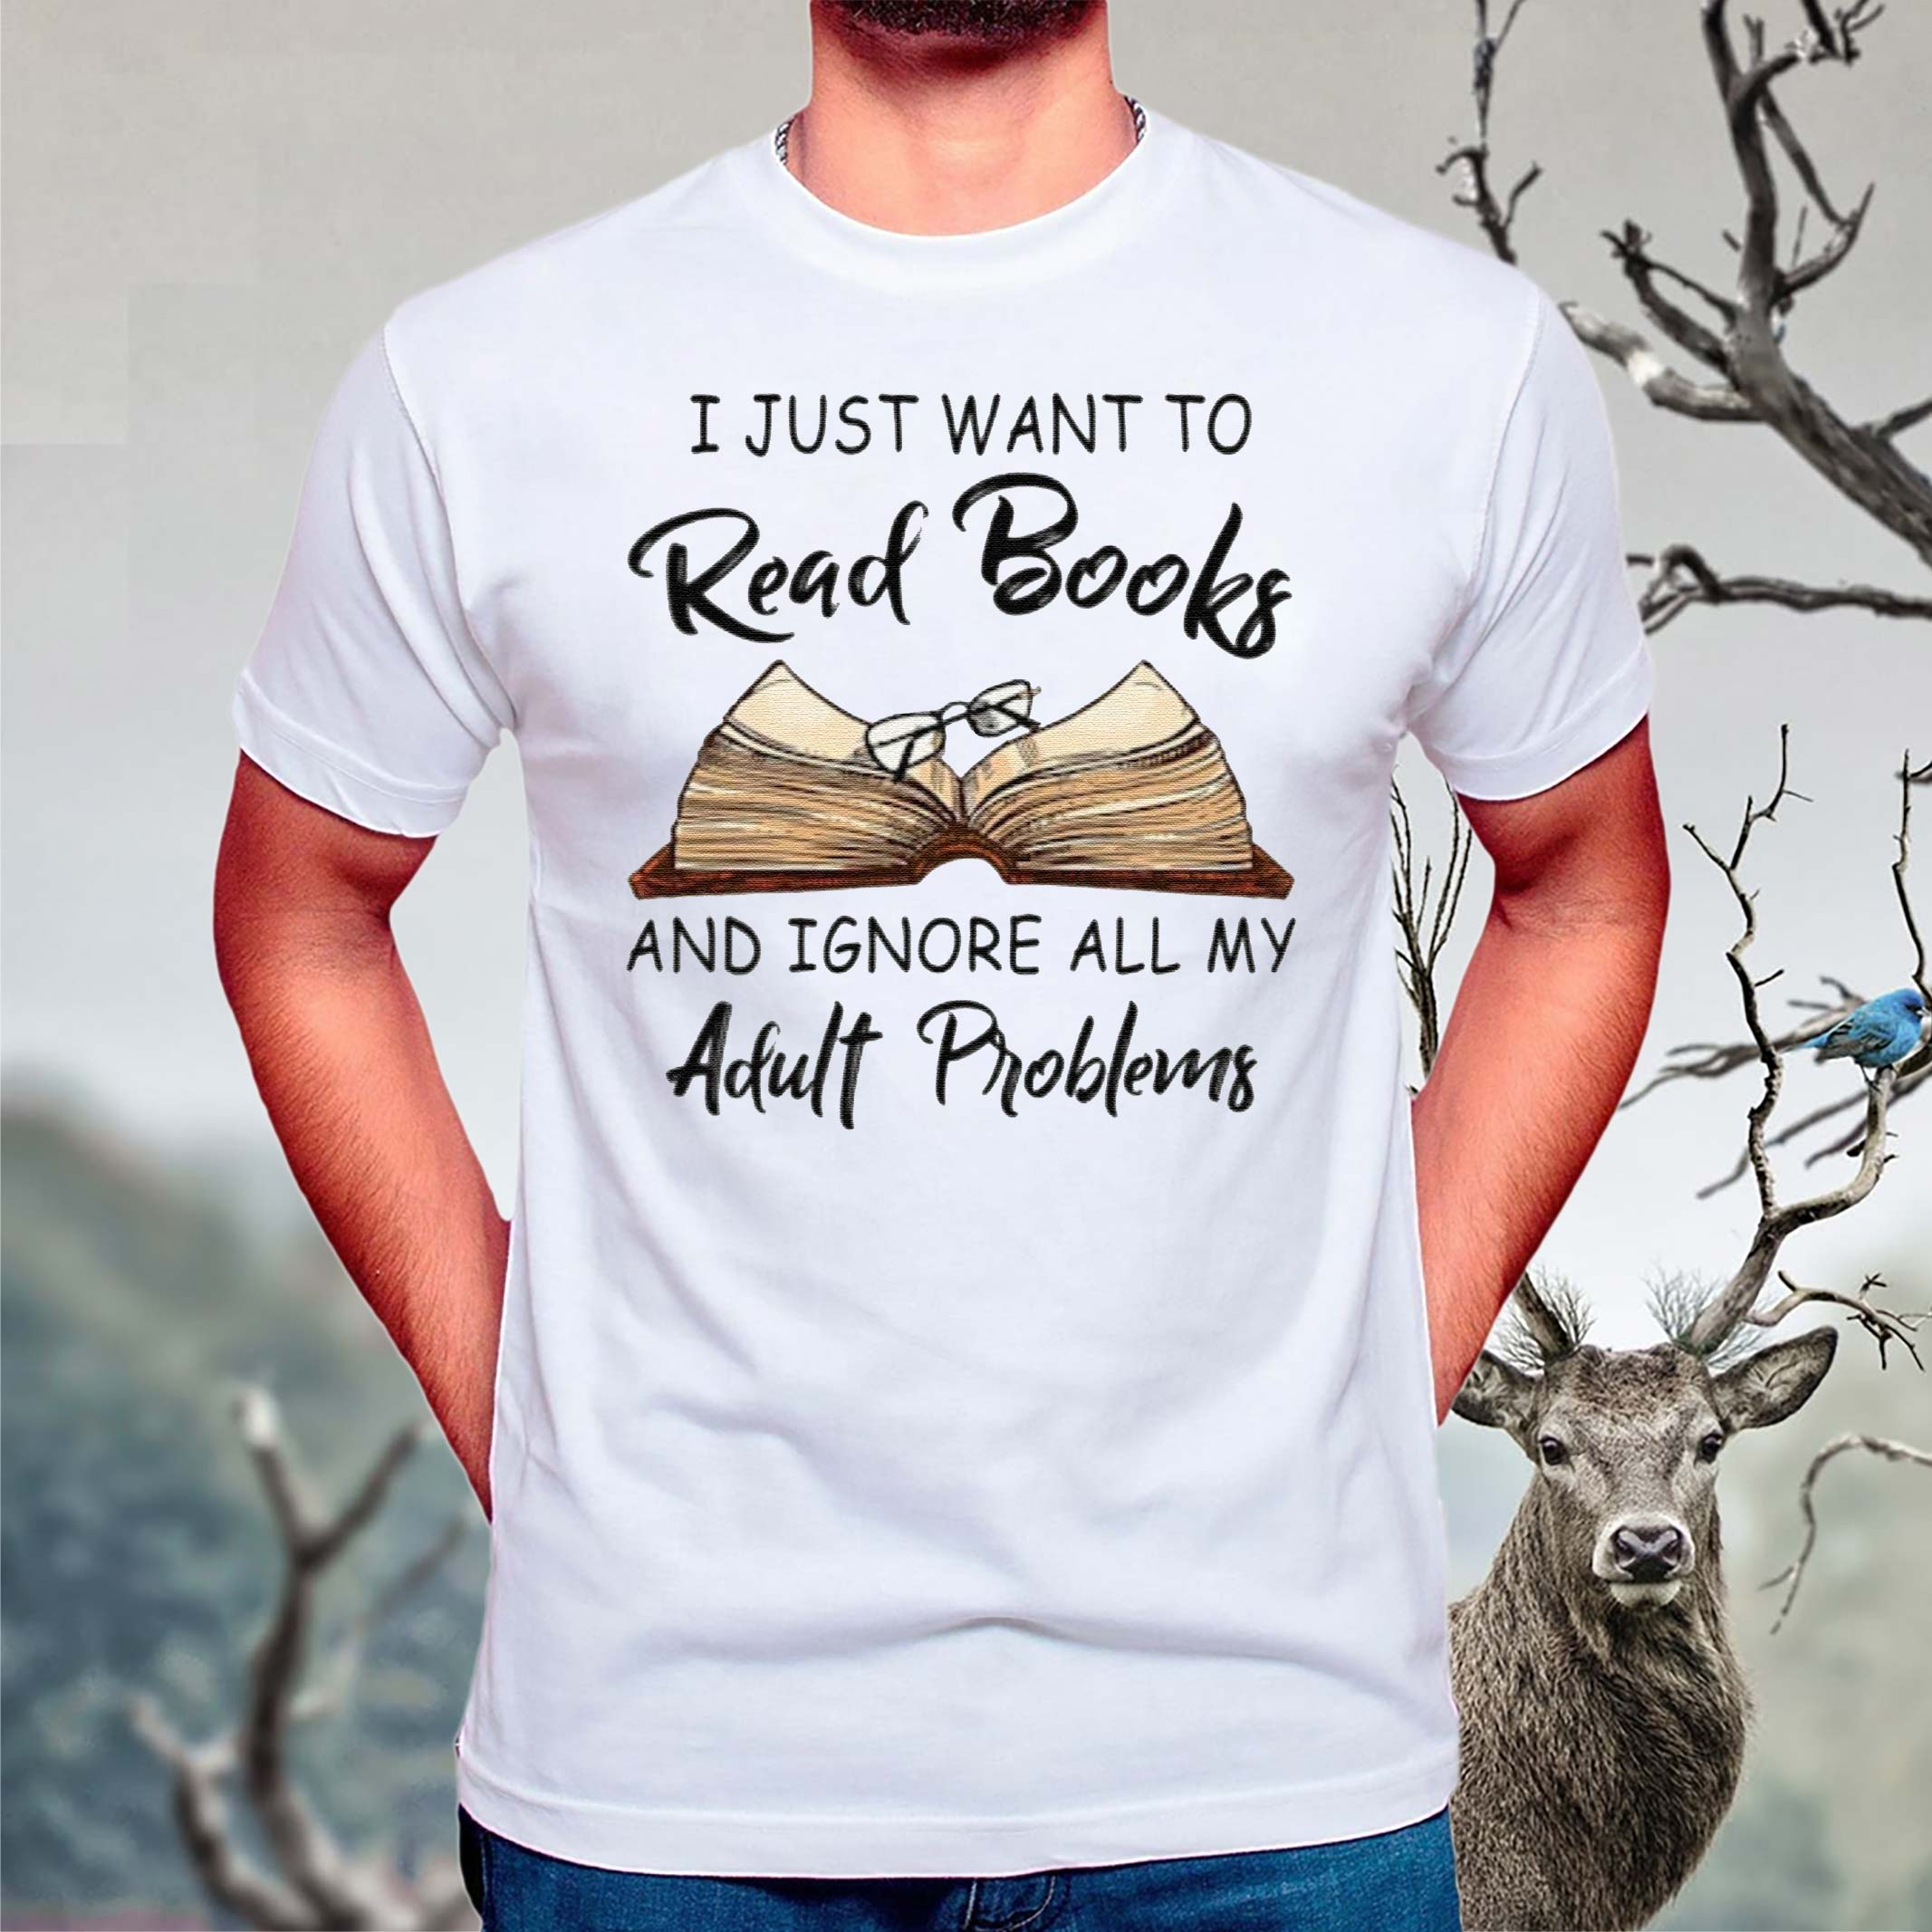 I-Just-Want-To-Read-Books-And-Ignore-All-My-Adult-Problems-Shirts